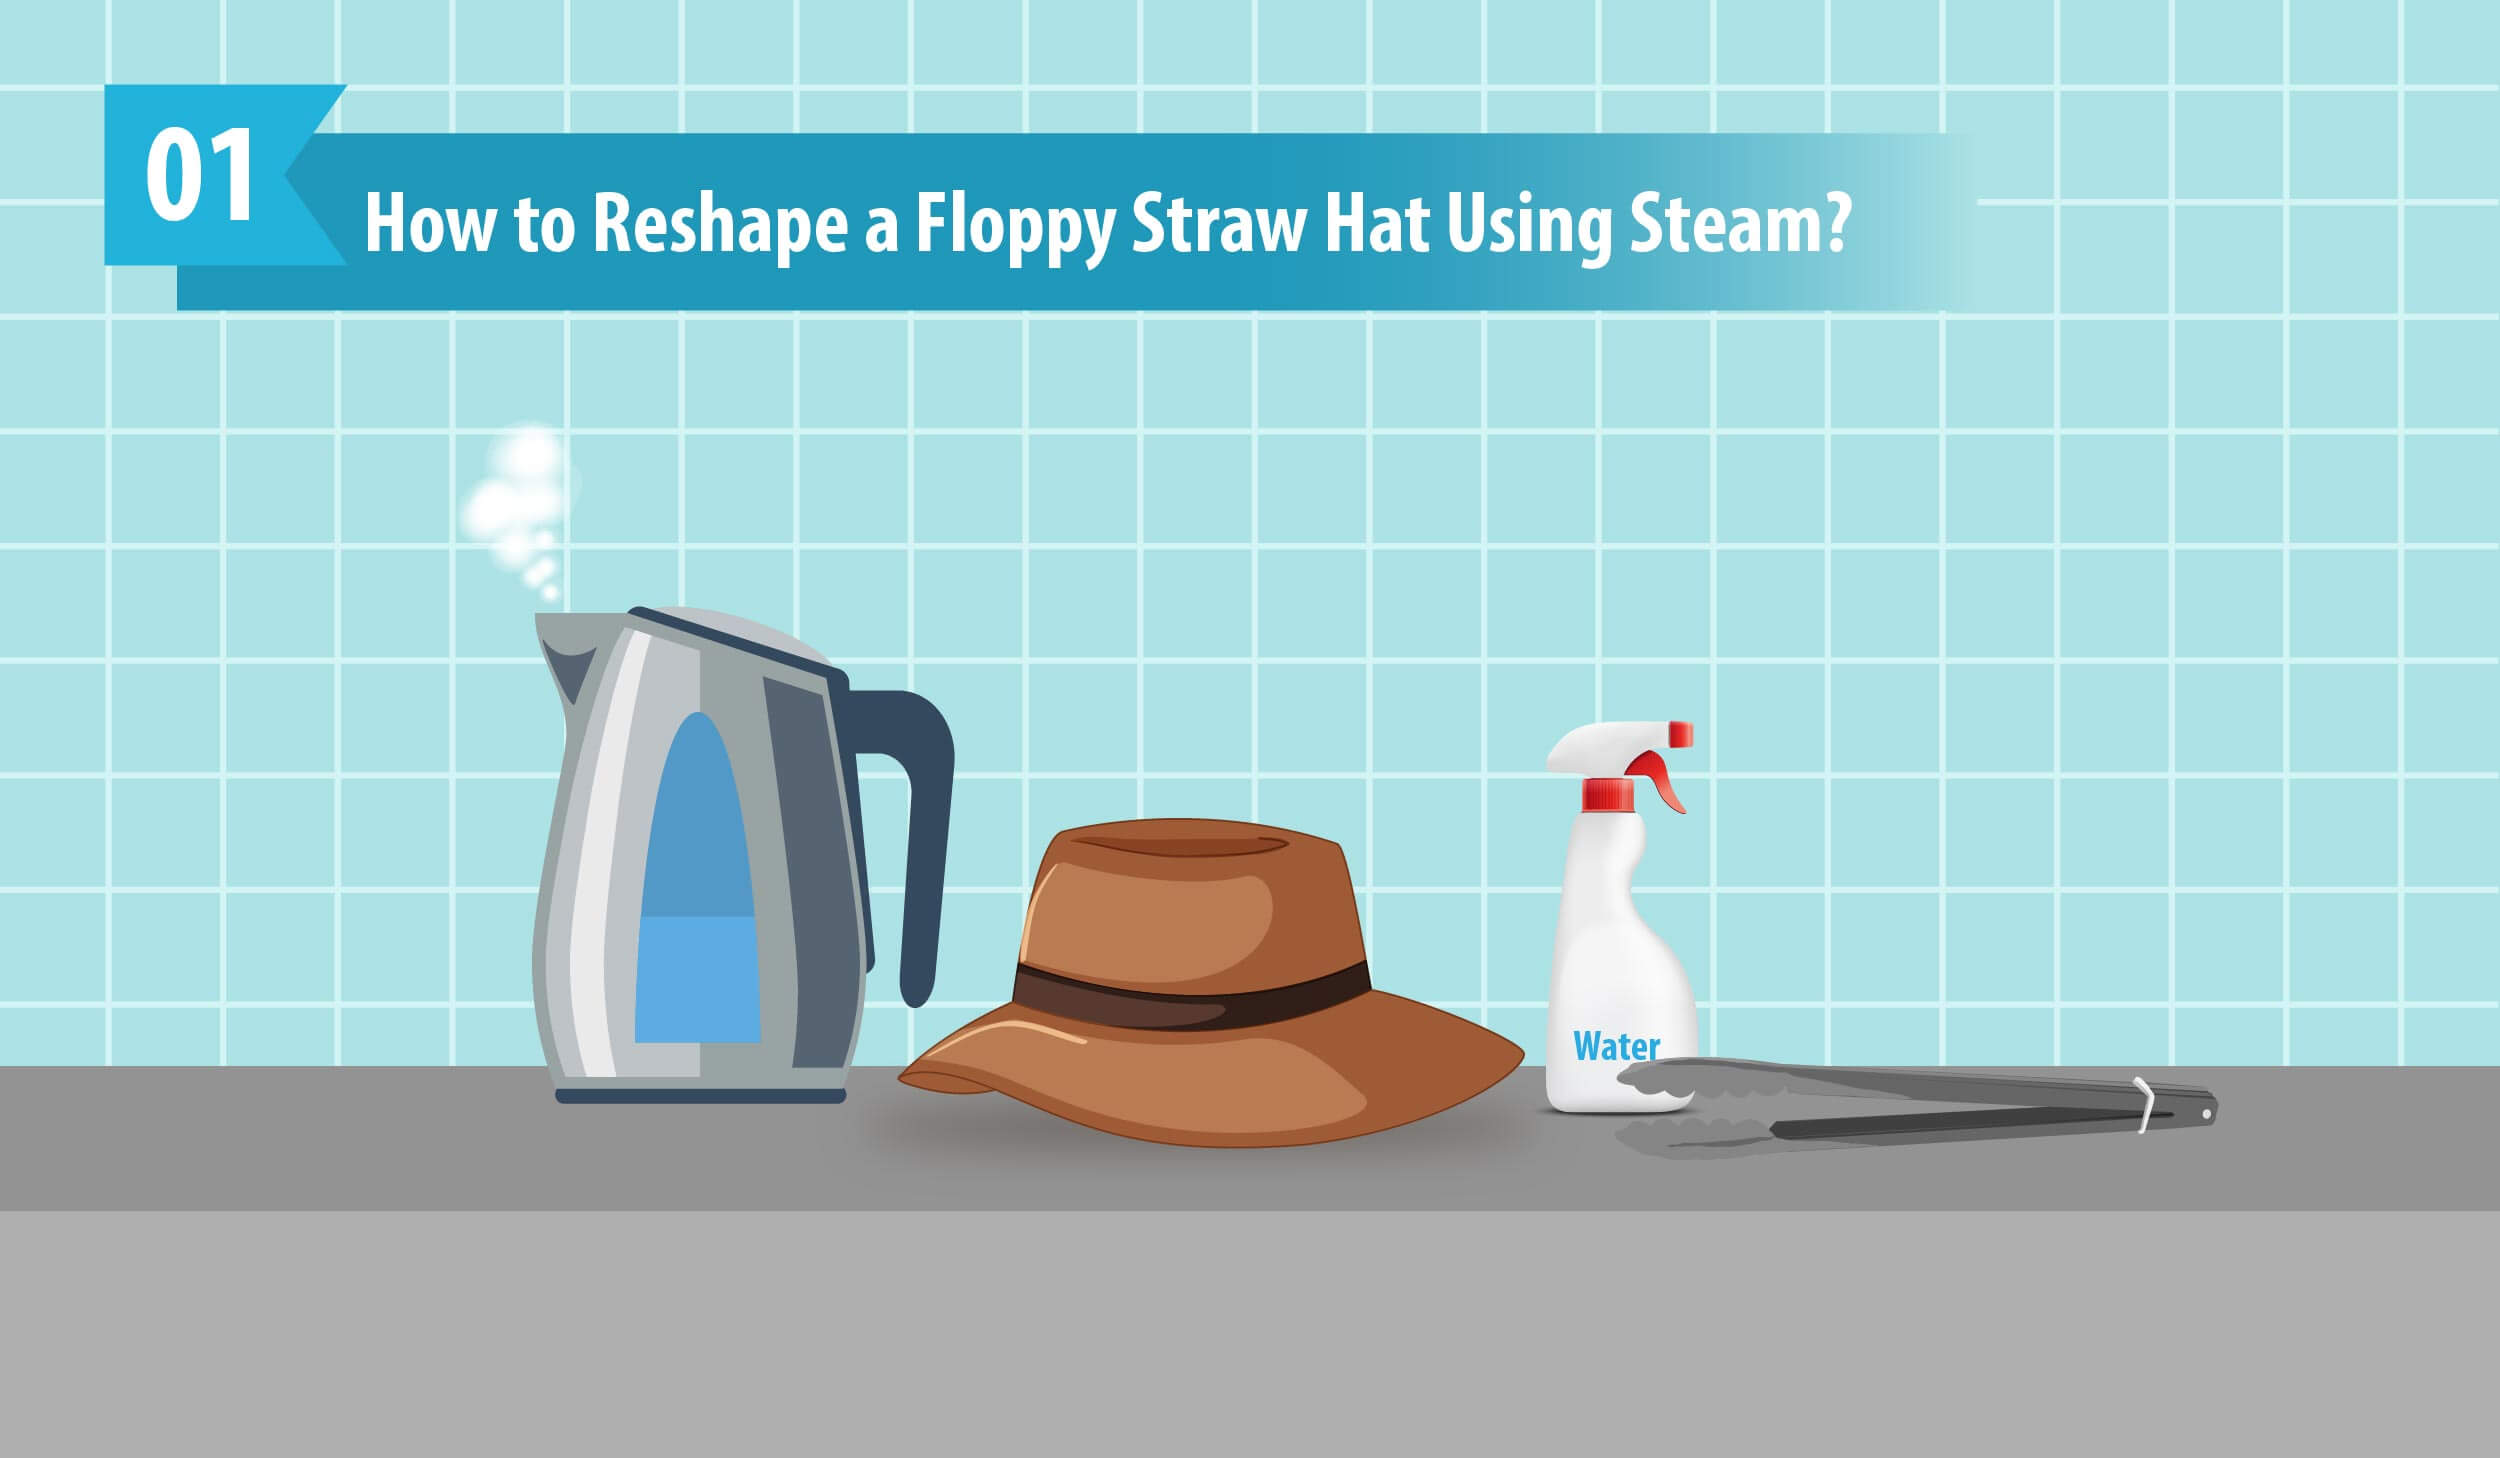 How to Reshape a Floppy Straw Hat Using Steam